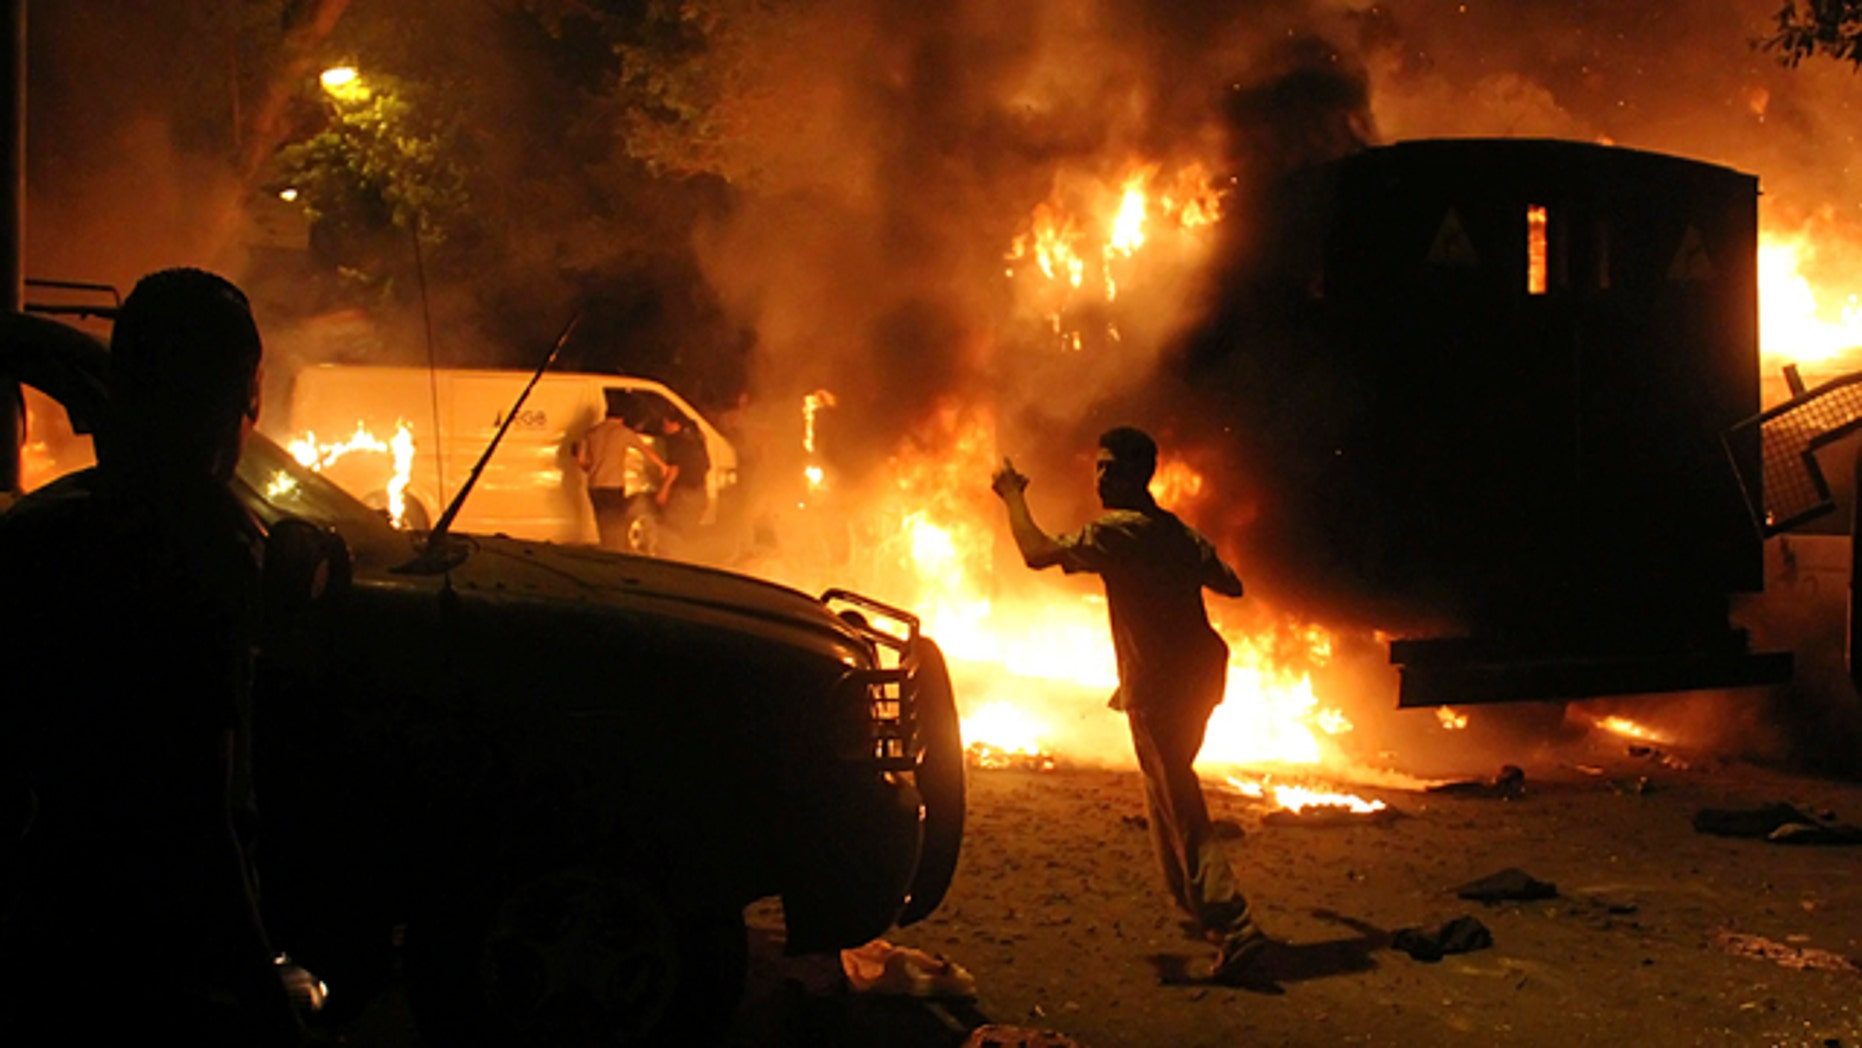 Sept. 9, 2011: Protesters are seen among flaming vehicles outside the building housing the Israeli embassy in Cairo, Egypt. A Facebook page calls for a fresh protest against the Israeli embassy in Amman, Jordan, sparking fears of more violence.